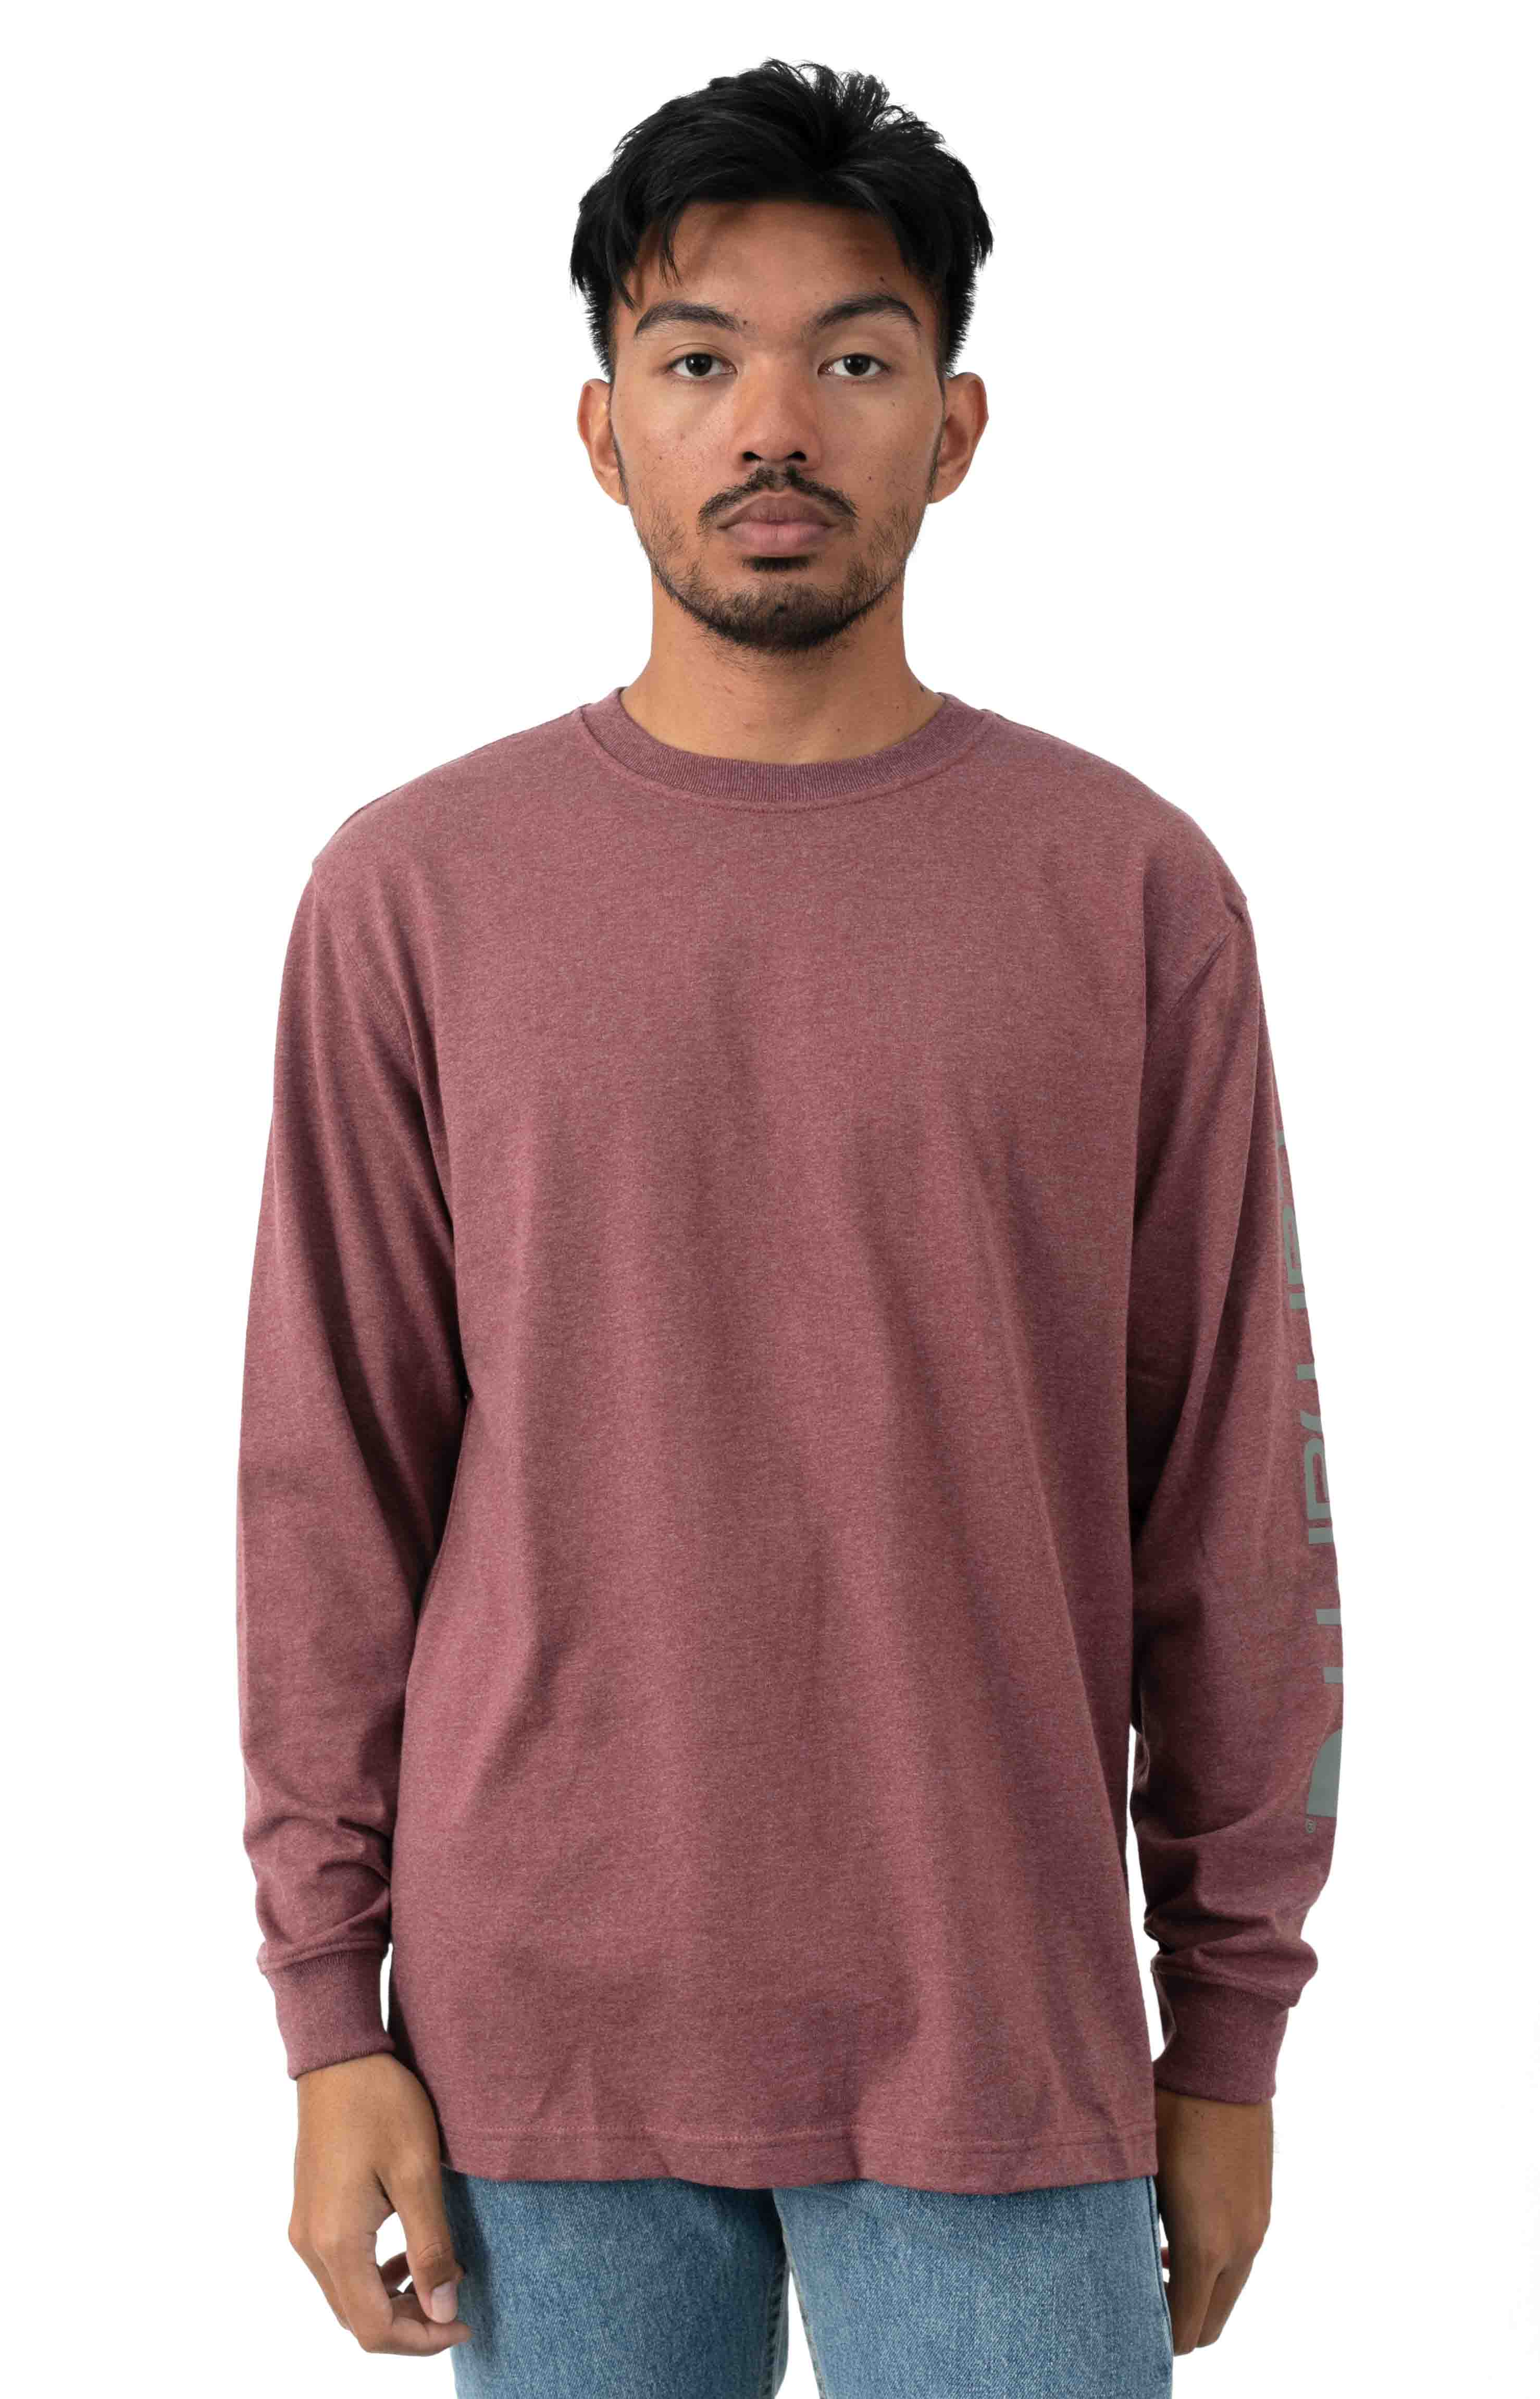 (K231) Signature Sleeve Logo L/S Shirt - Iron Ore Heather